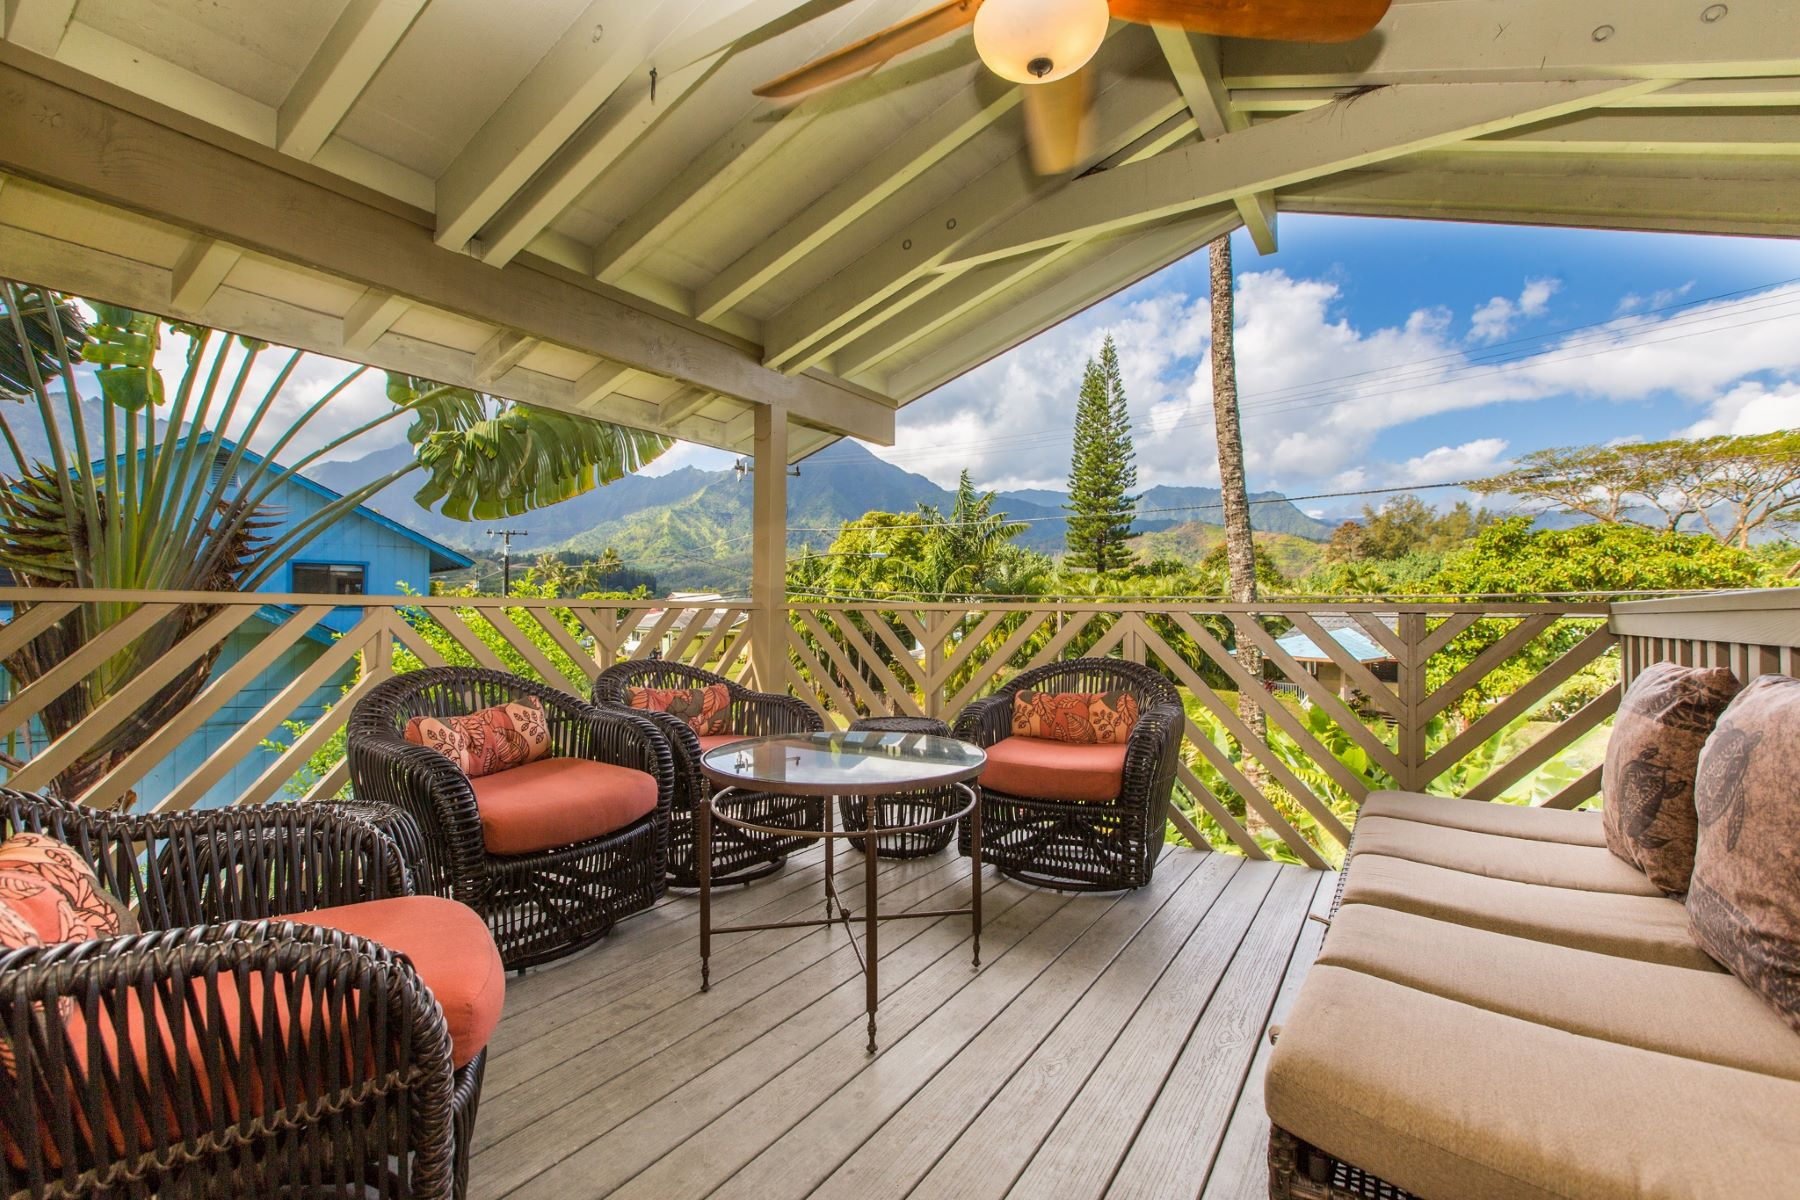 Multi-Family Home for Rent at The Bird's Nest 4457 Aku Road The Bird's Nest Hanalei, Hawaii 96714 United States